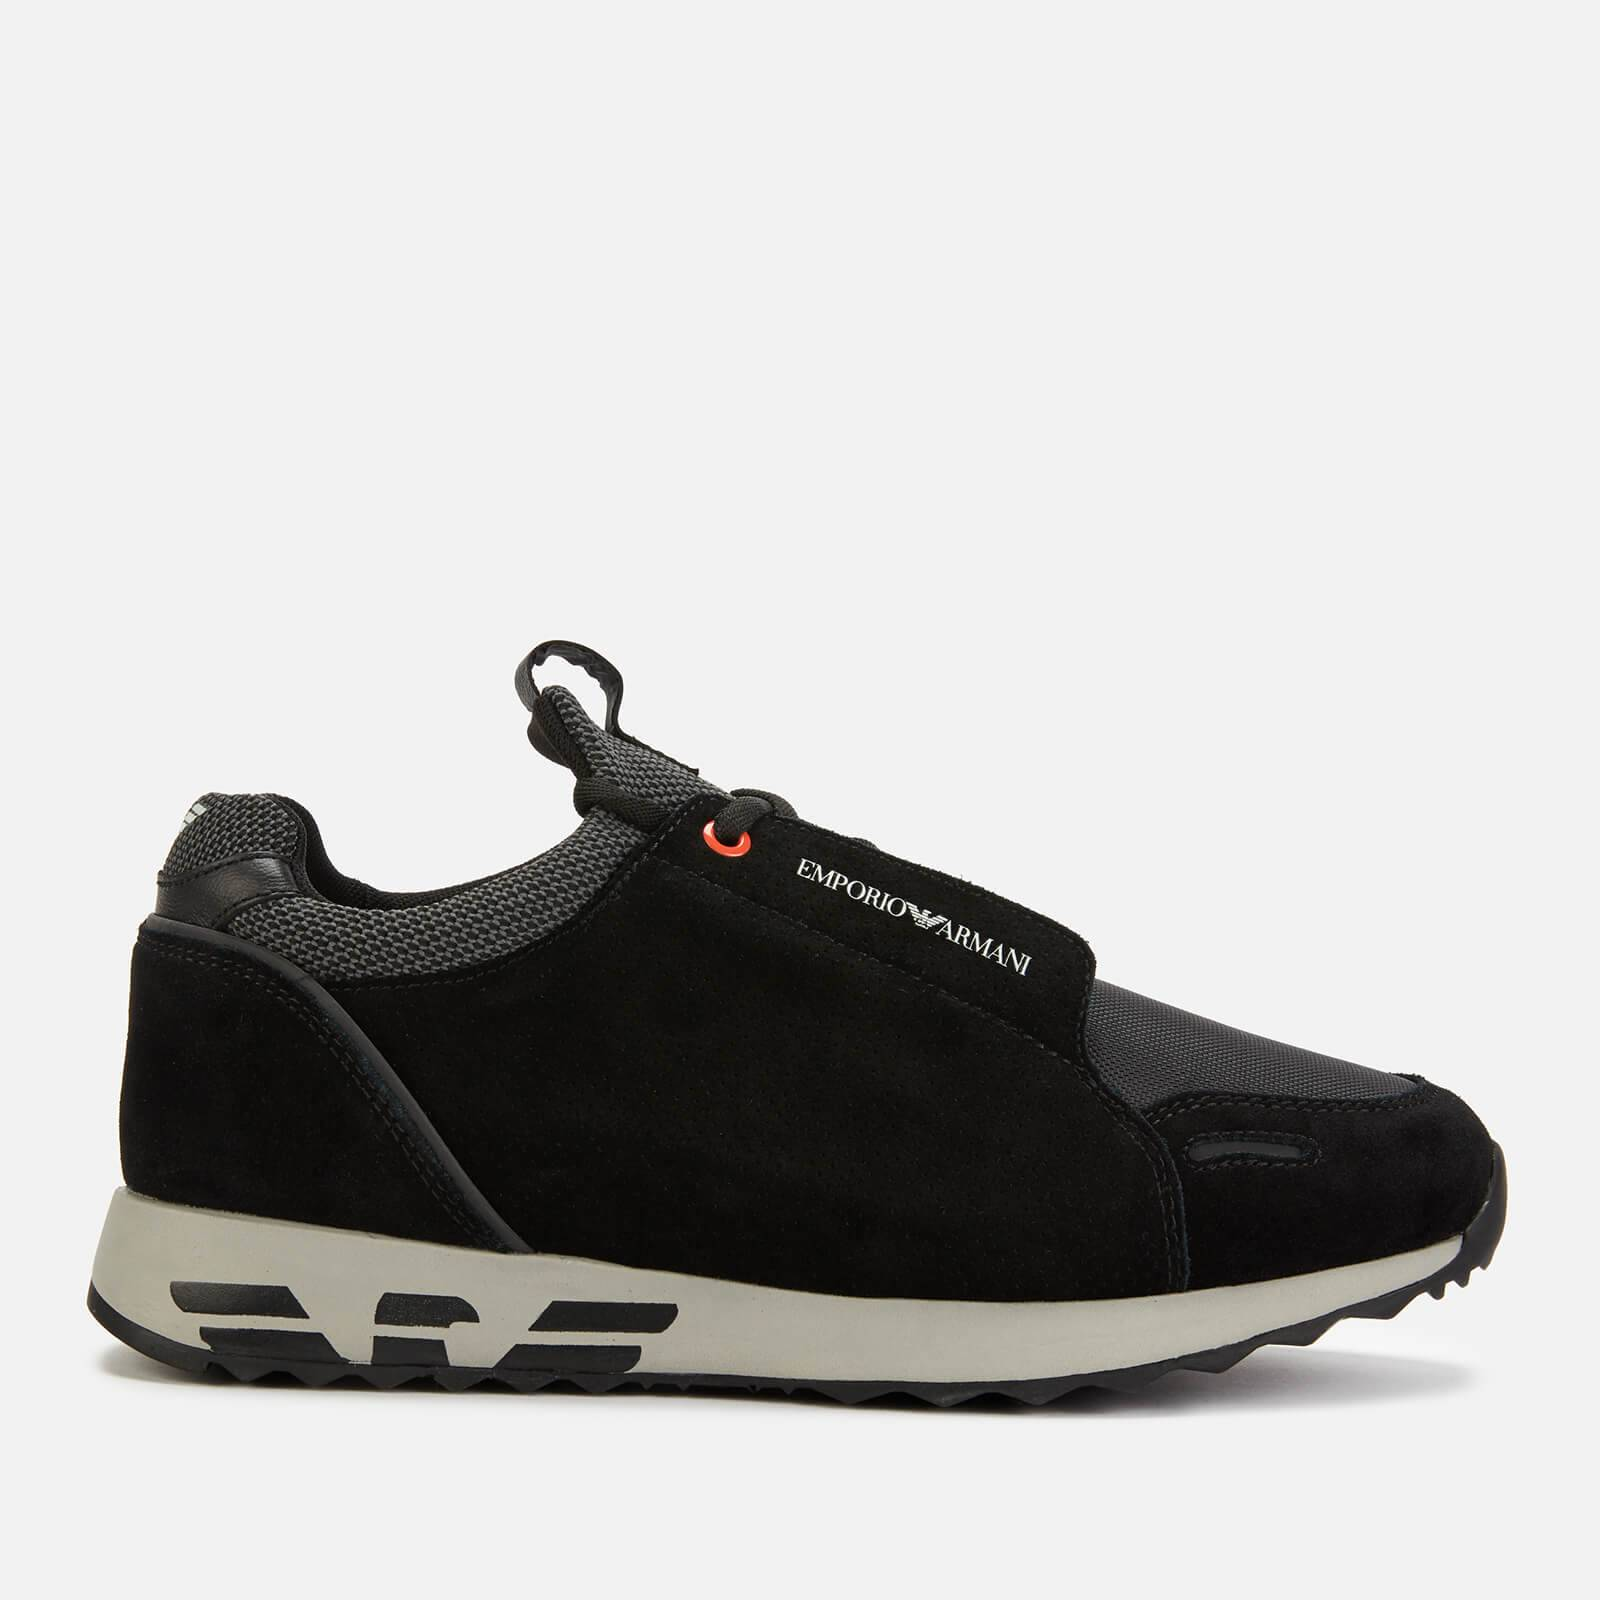 Emporio Armani s Arco Suede/Cord Running Style Trainers - Black/Black/Black - EU 45/UK 11 - Black